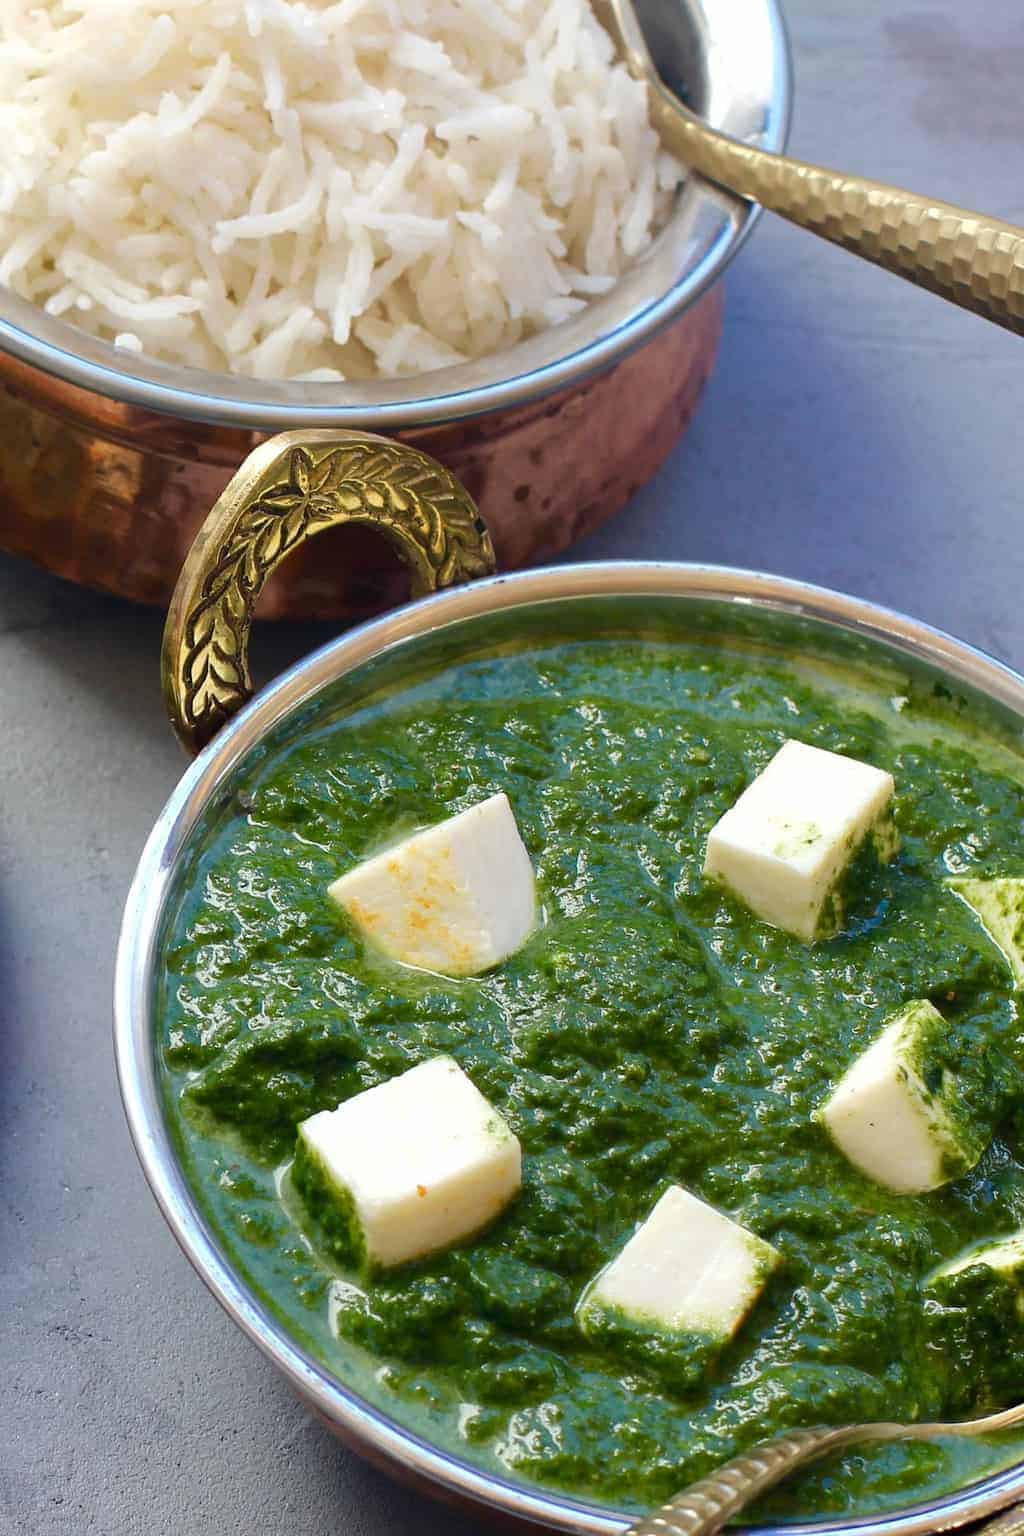 Palak Paneer in a copper bowl with rice on the side